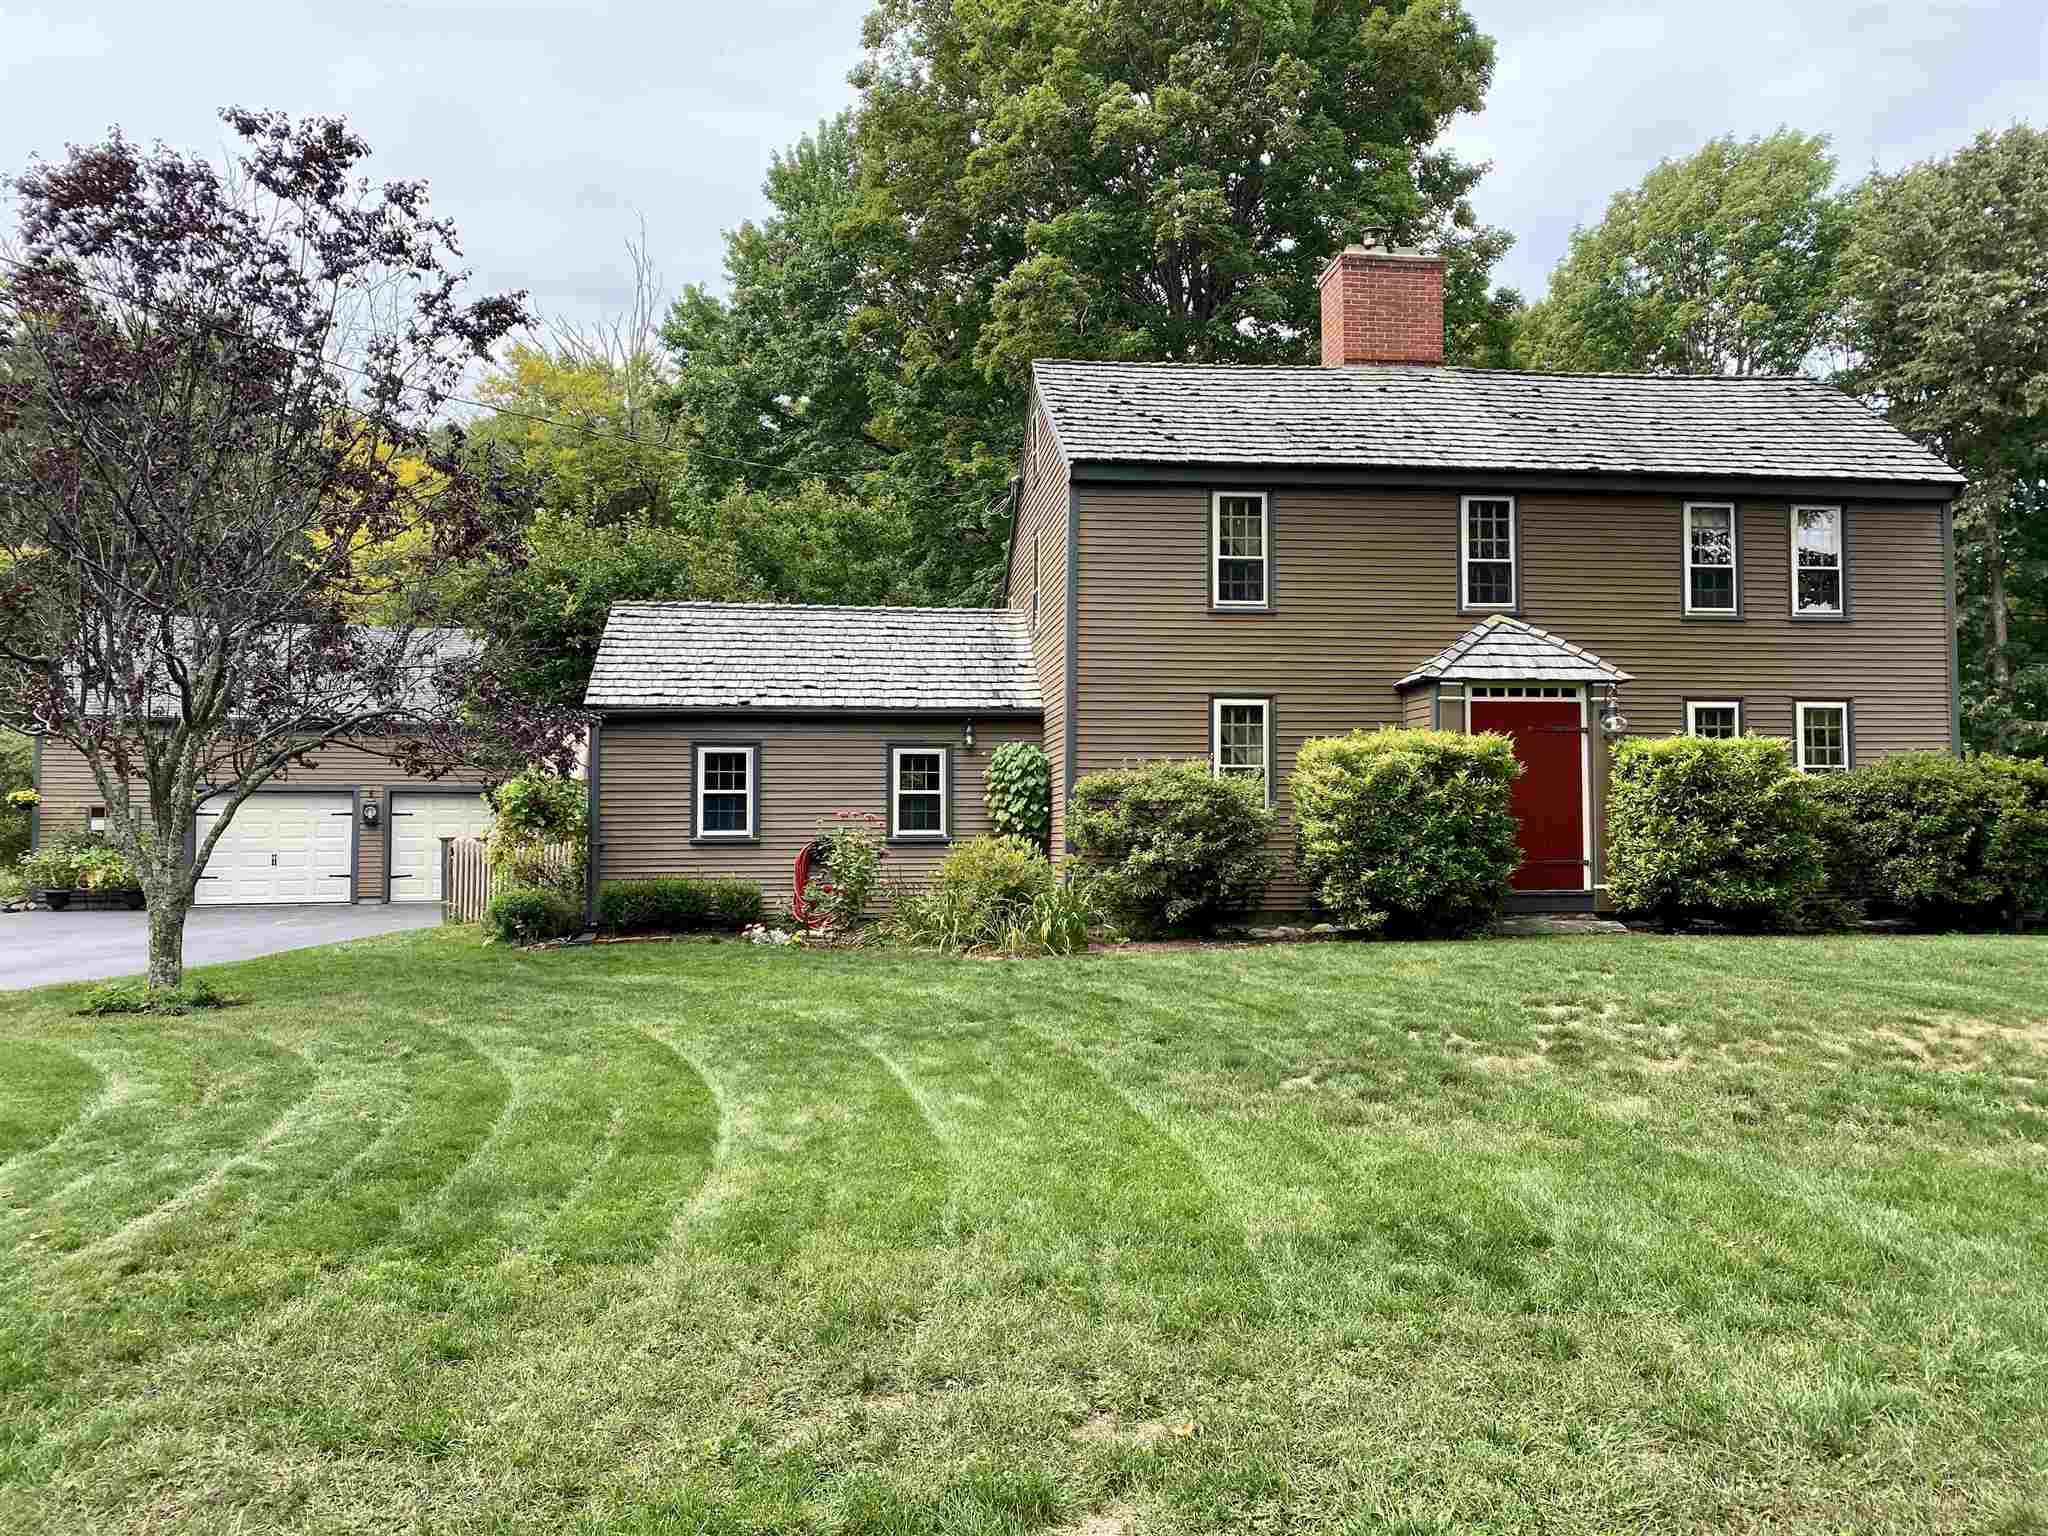 Photo of 32 Sandown Road Danville NH 03819